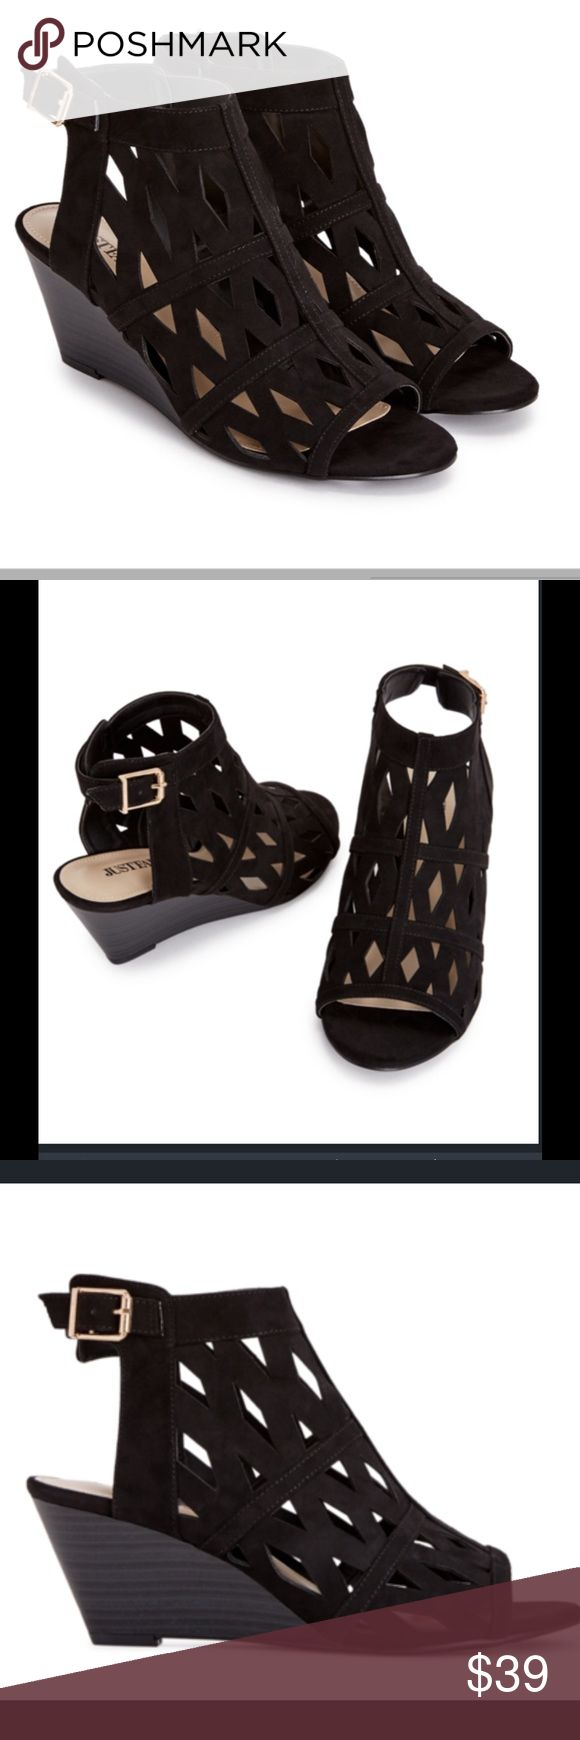 "Black Trendy Wedges With Cutouts 2.25"" wedge height. Gives you the trendy look without a too high height.  Cute & comfortable. Shoe Dazzle Shoes Wedges"